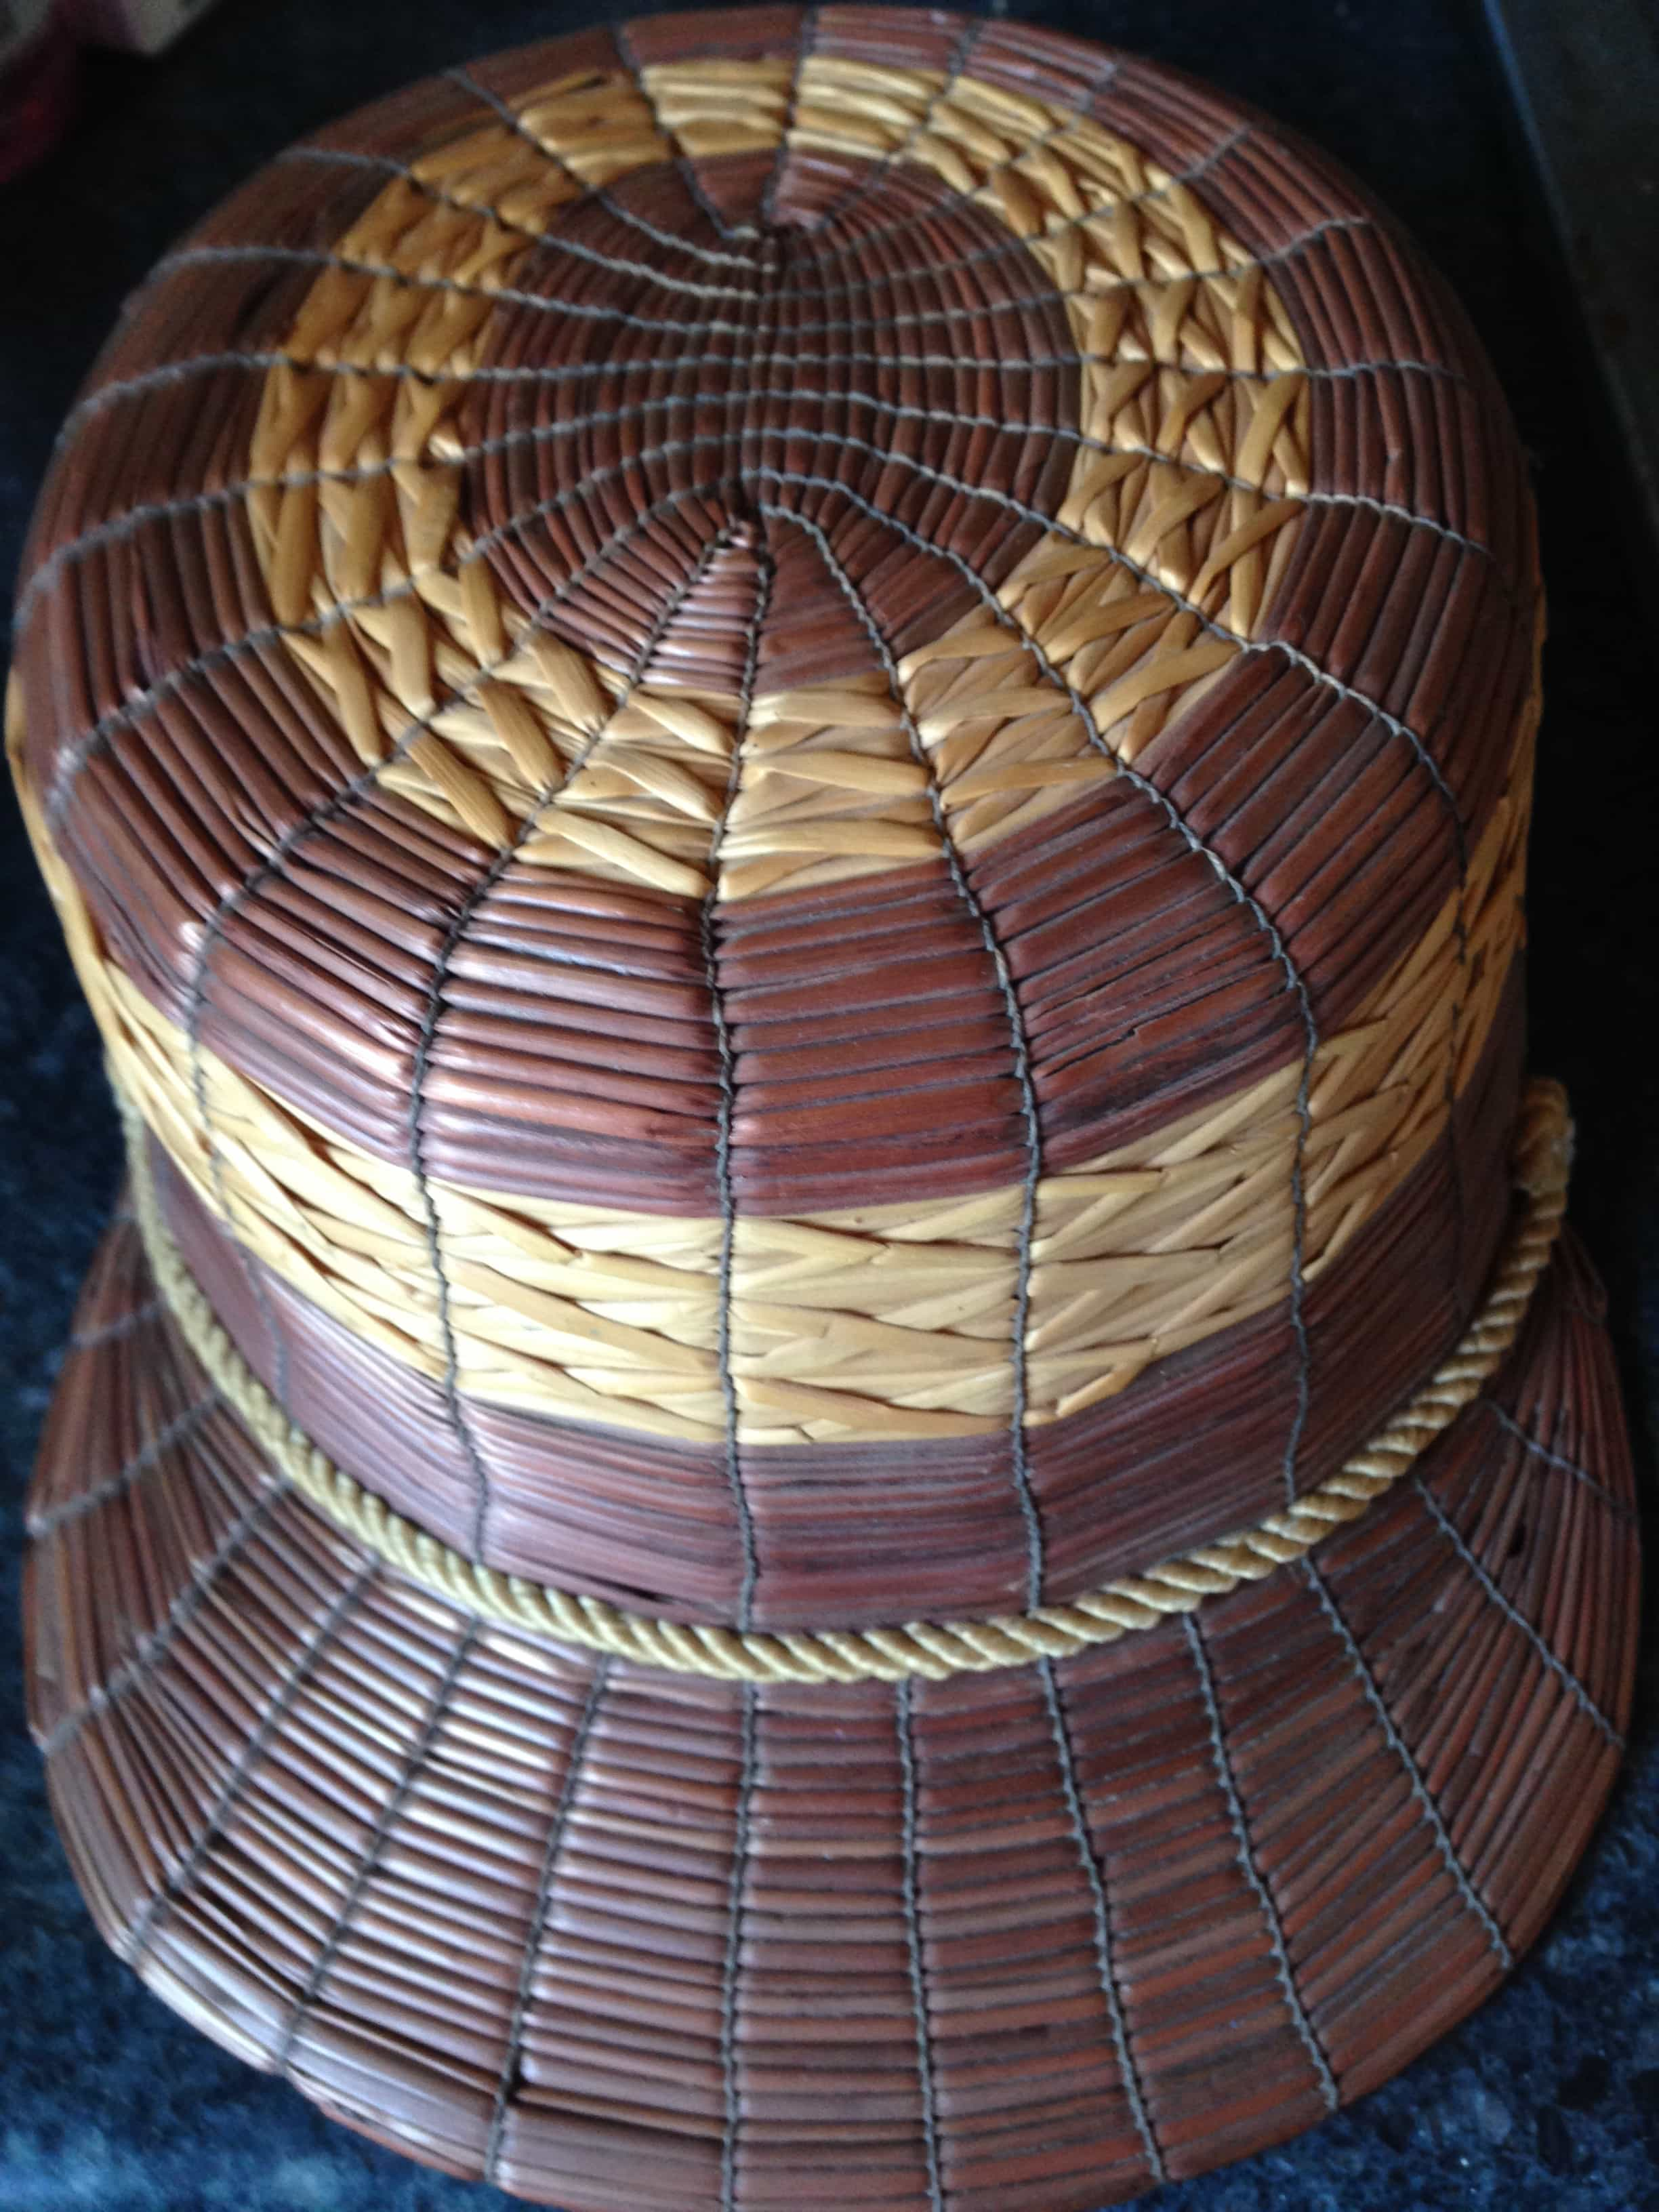 yeddo hat brown and natural courtesy The Straw Shop Collection